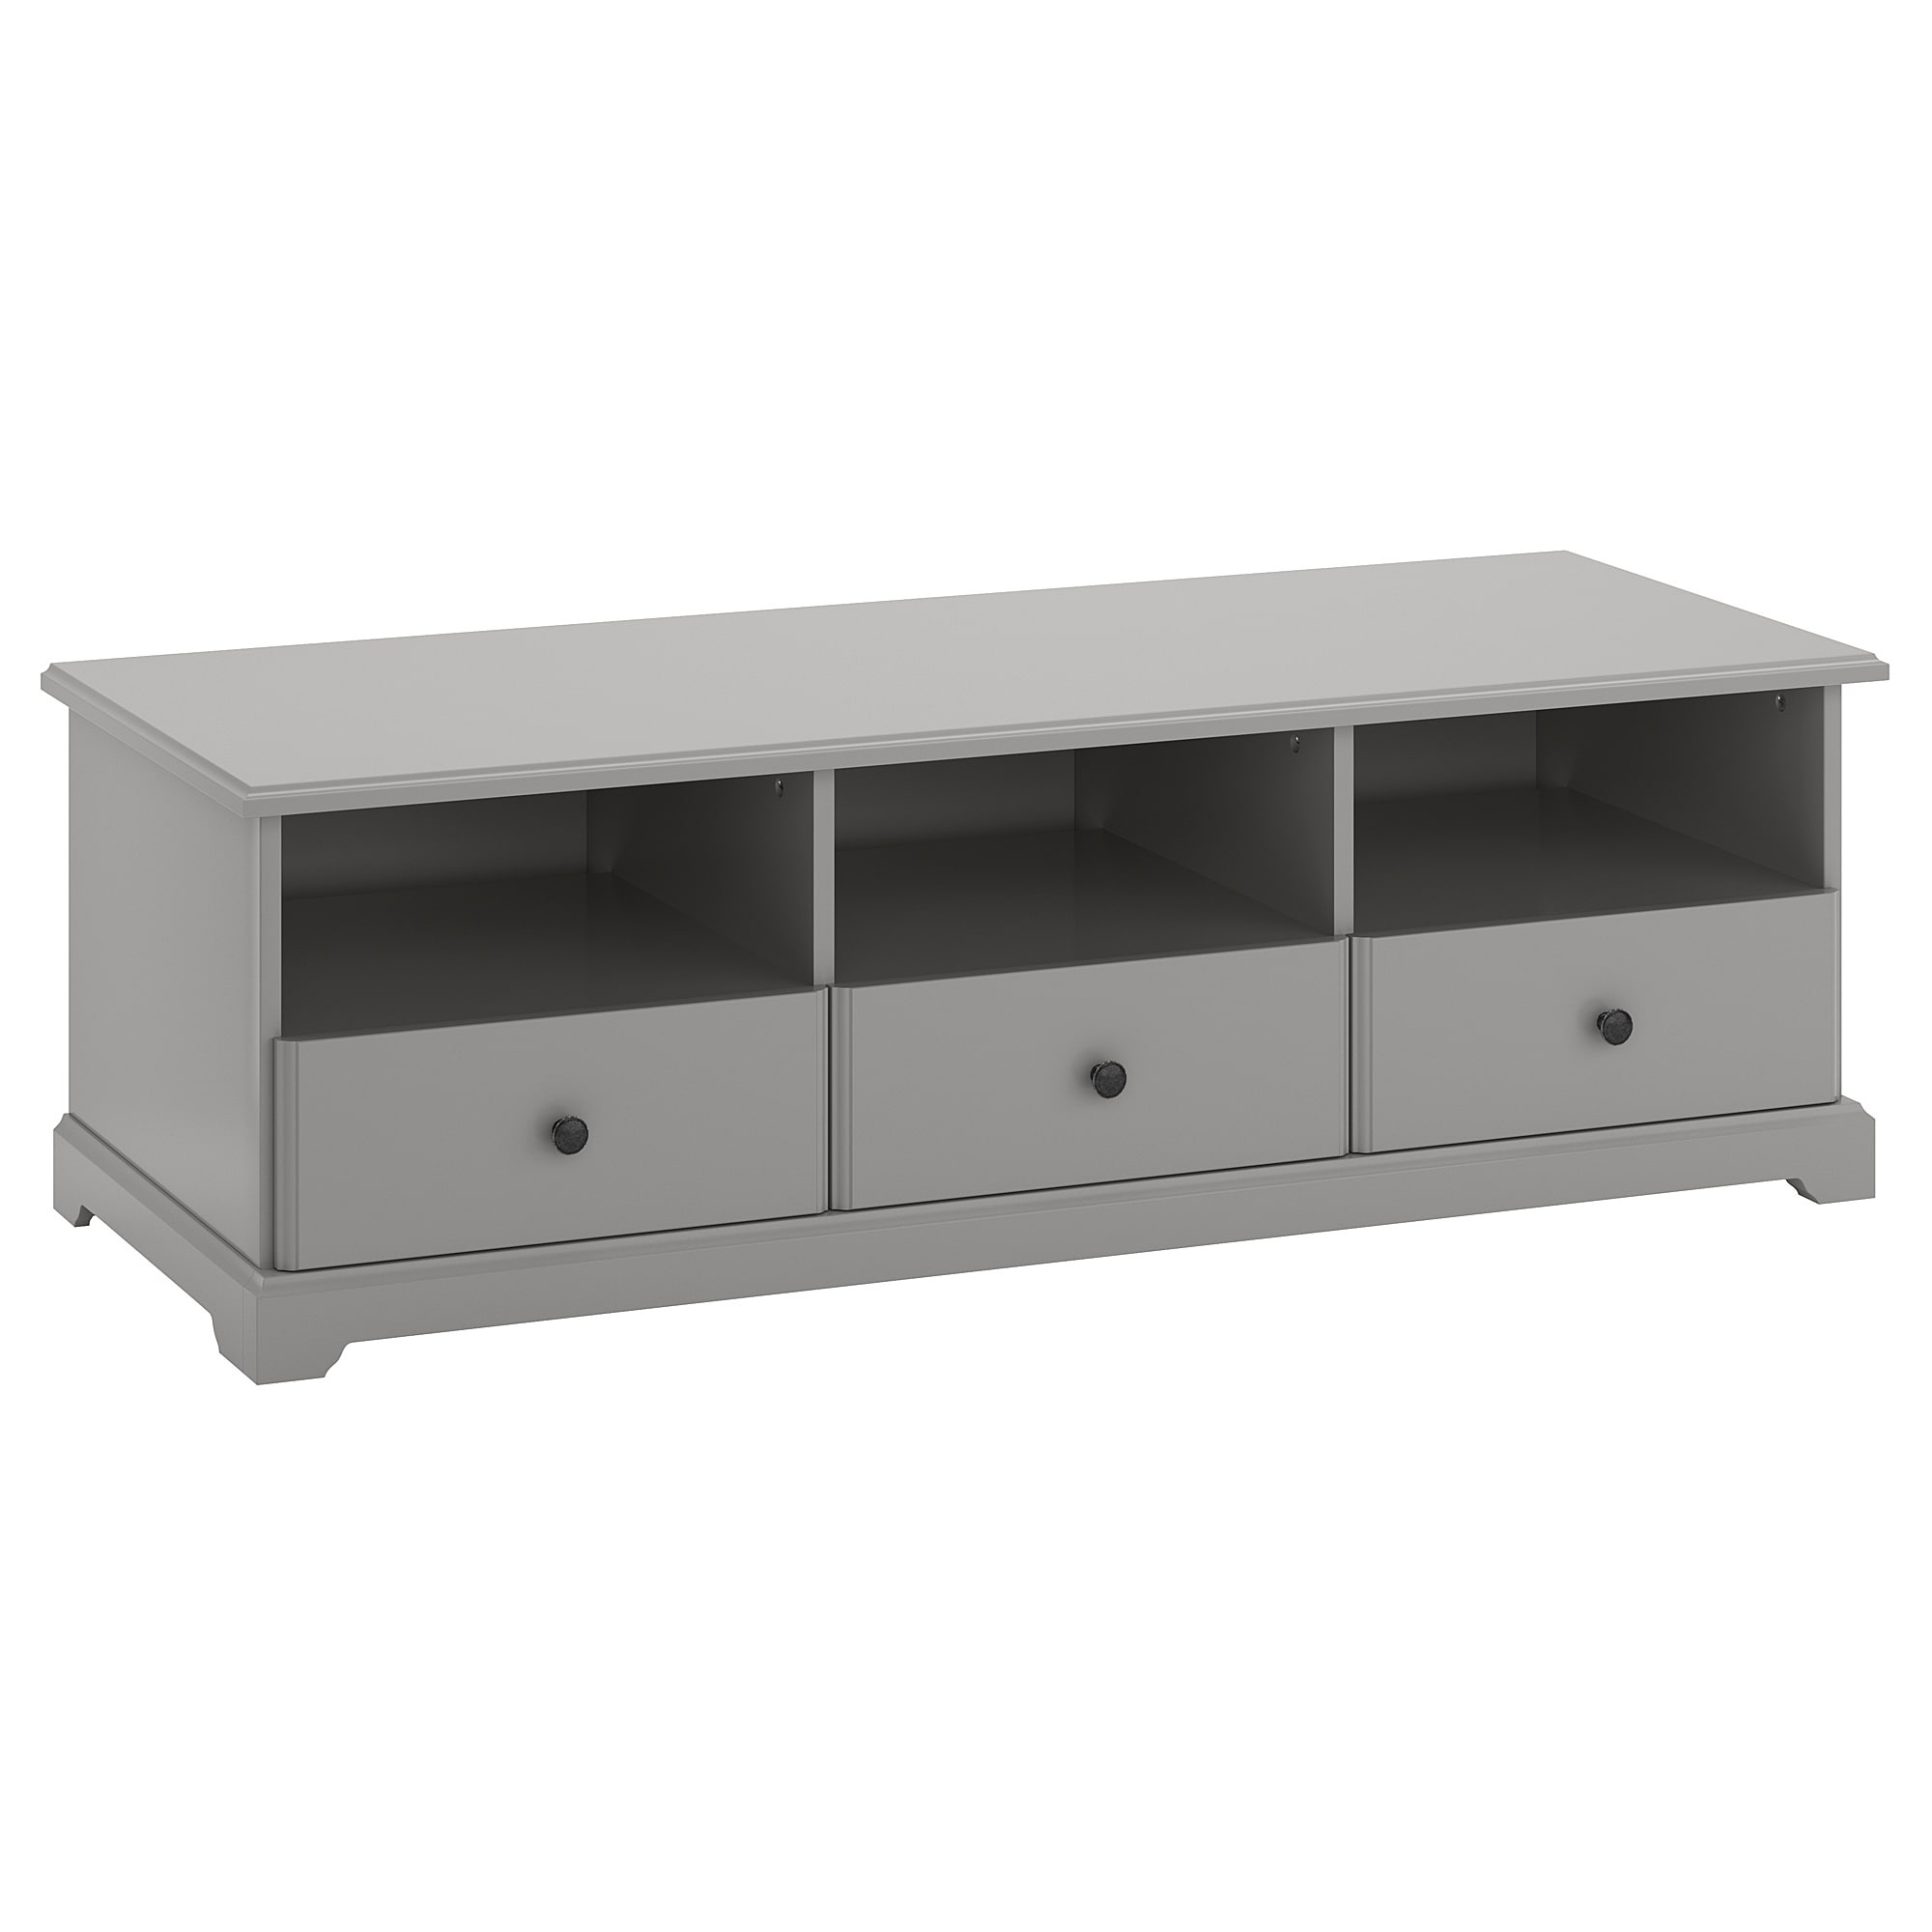 Favorite Liatorp Tv Bench Grey 145 X 49 X 45 Cm – Ikea Regarding Tv Drawer Units (View 3 of 20)